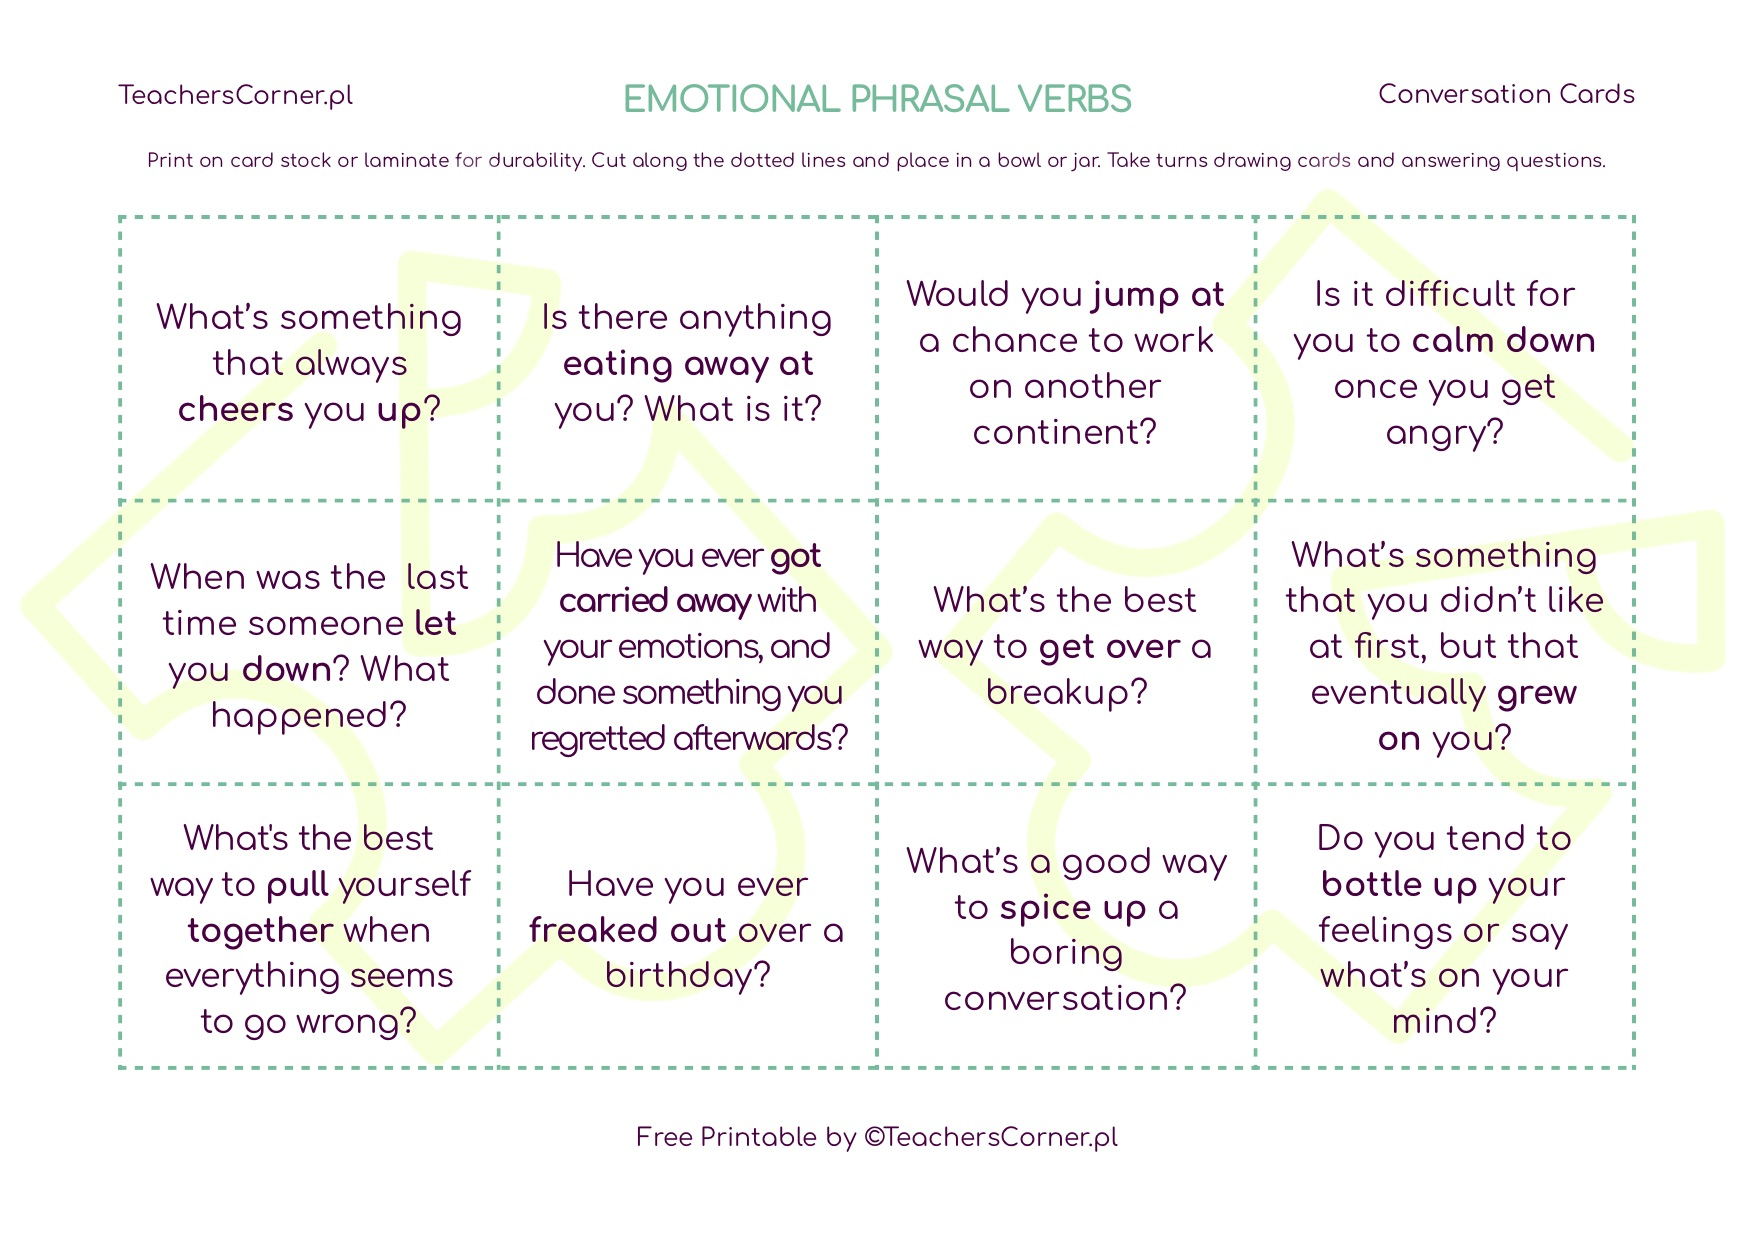 phrasal verbs related to emotions